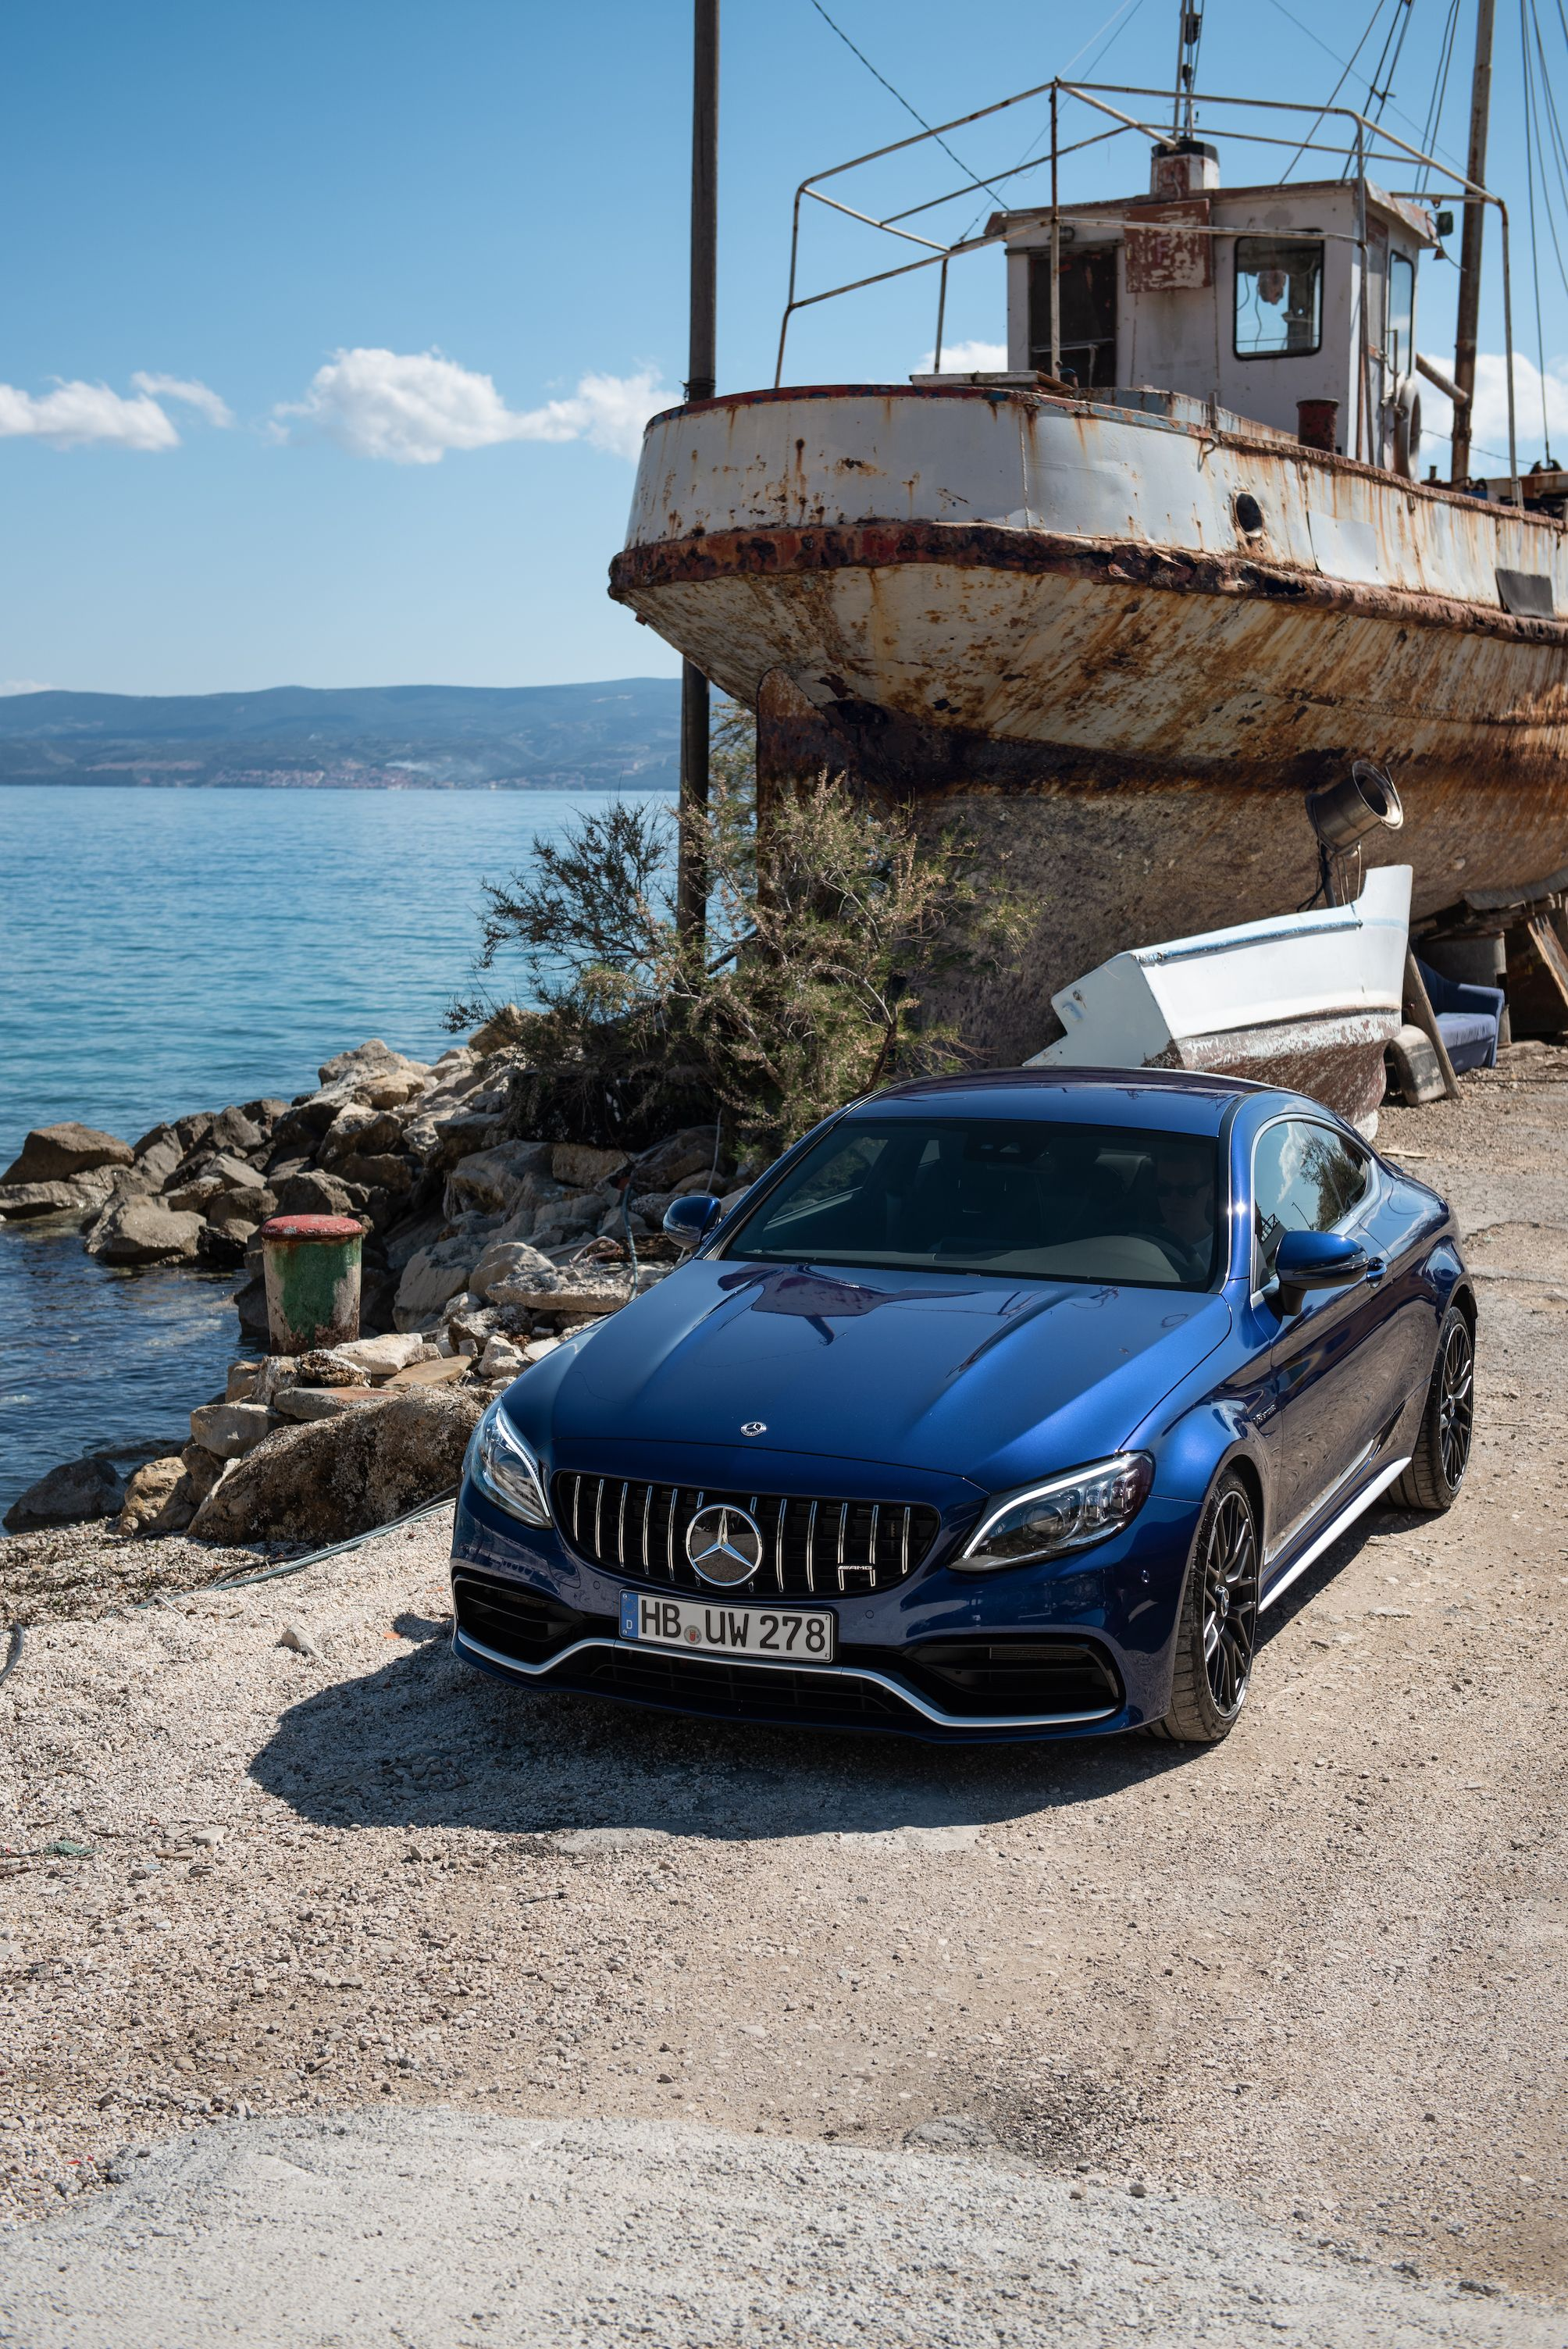 Photo of The new Mercedes-Benz C-Class Coupé and Cabriolet.